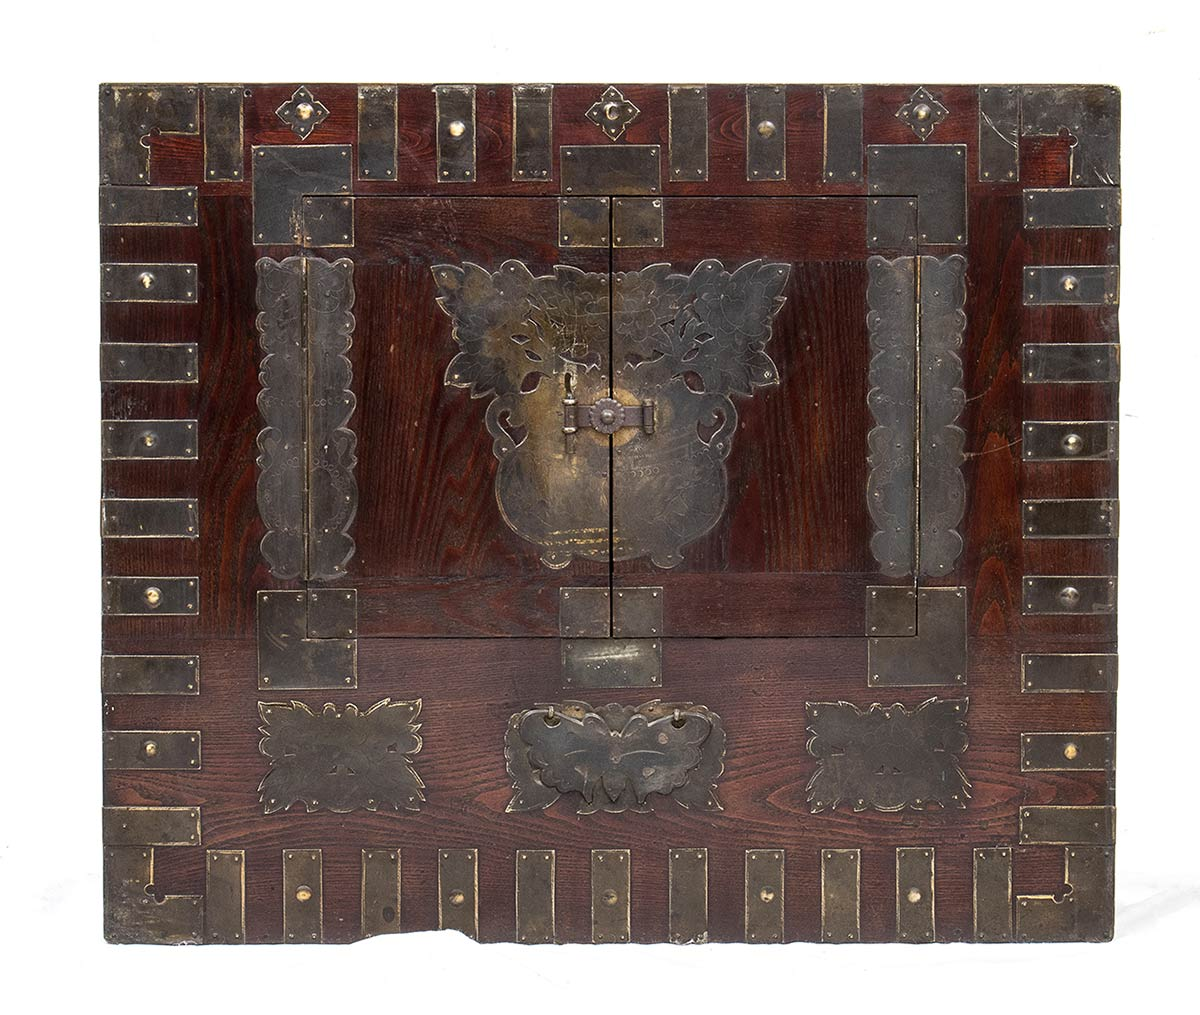 A WOOD AND METAL CHEST, BANDAJIKorea, 19th-20th century - Image 2 of 4